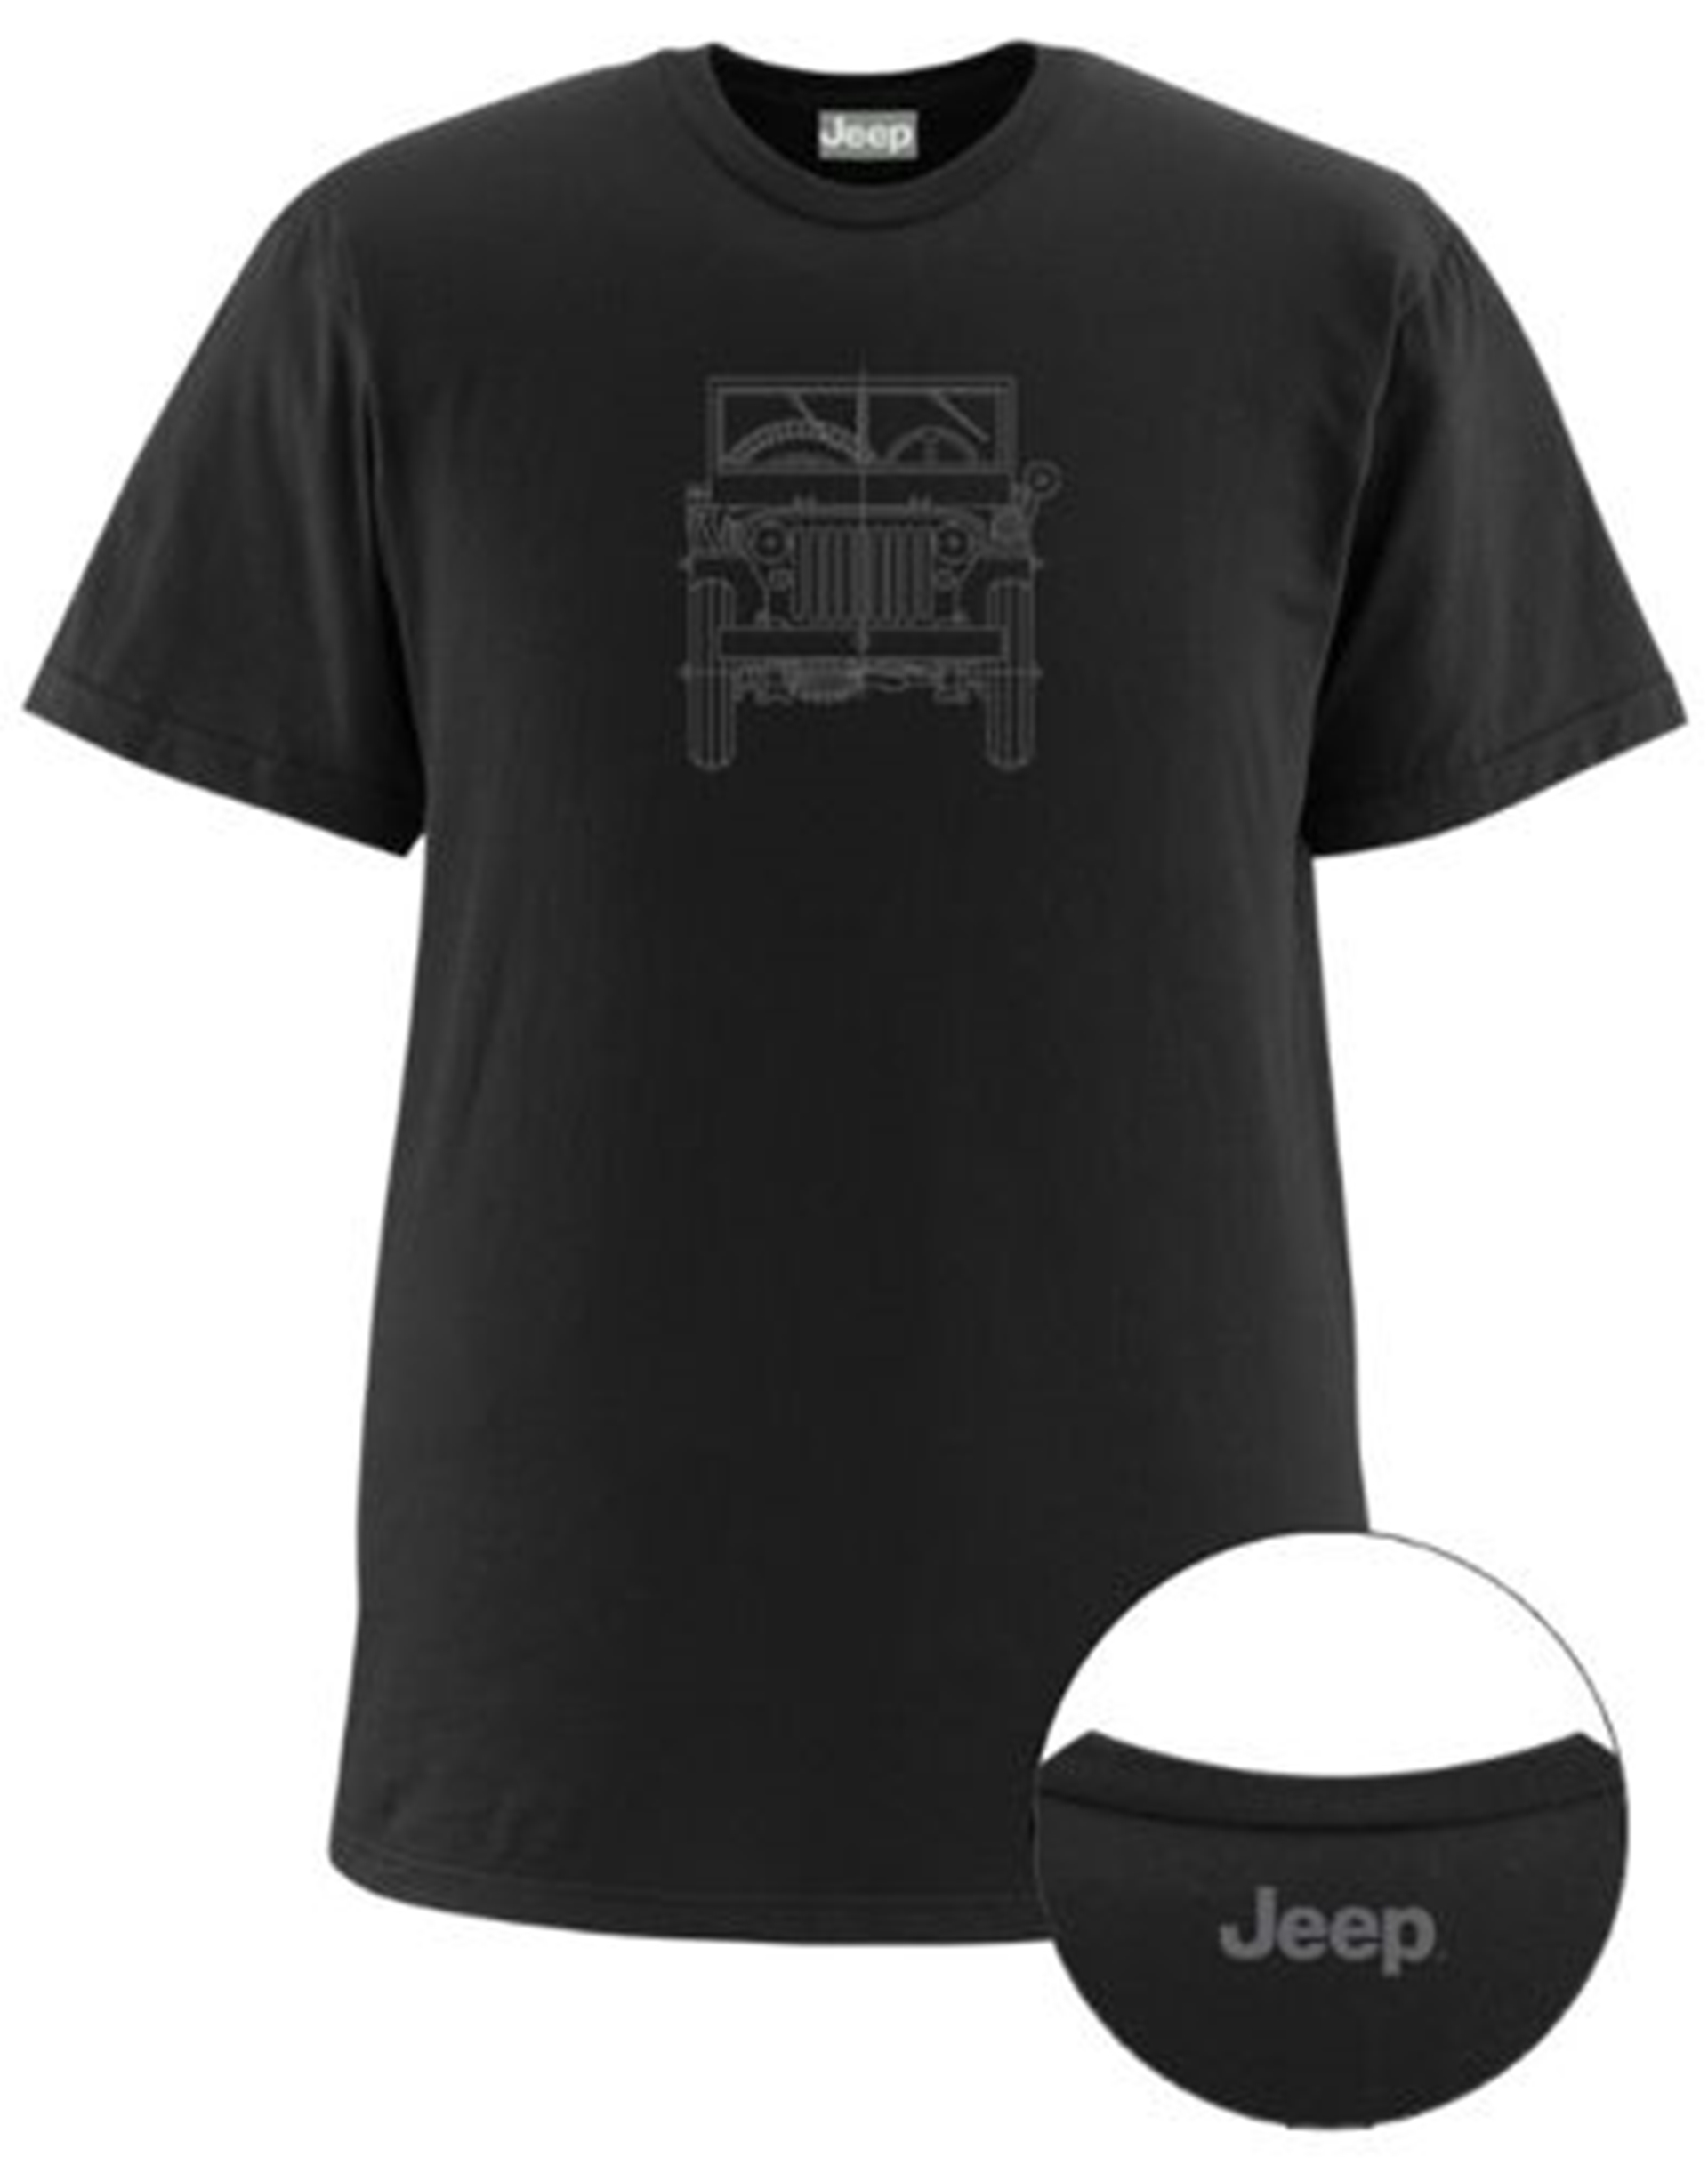 jeep-wrangler-gifts-t-shirt